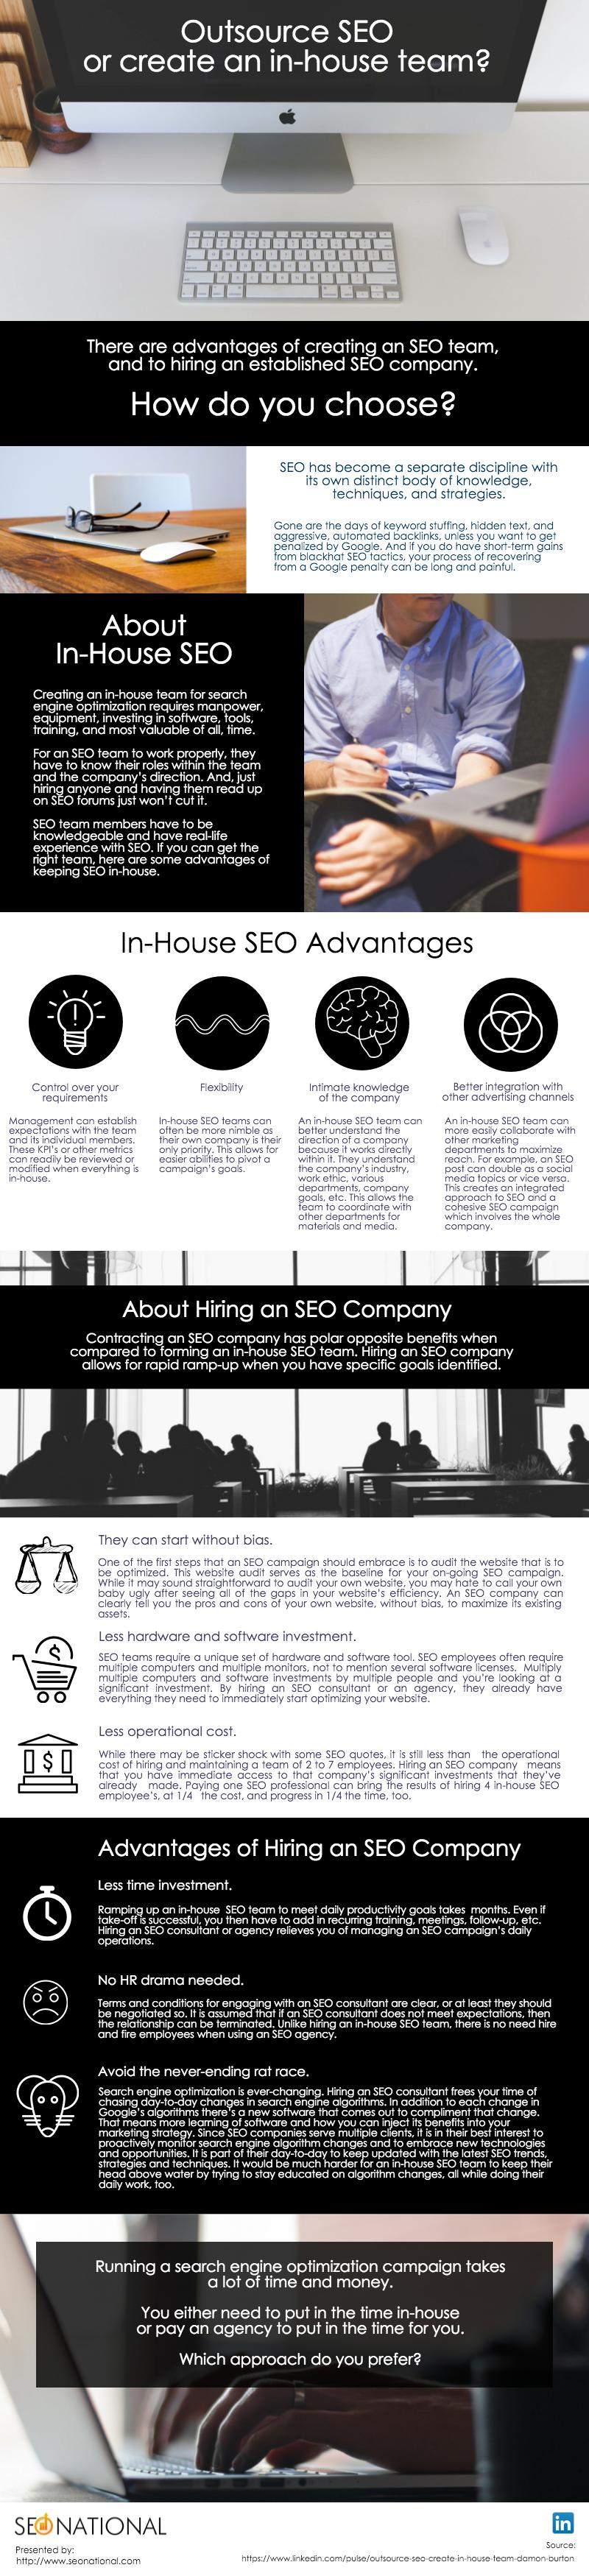 Outsource SEO or Keep In-House? (infographic)